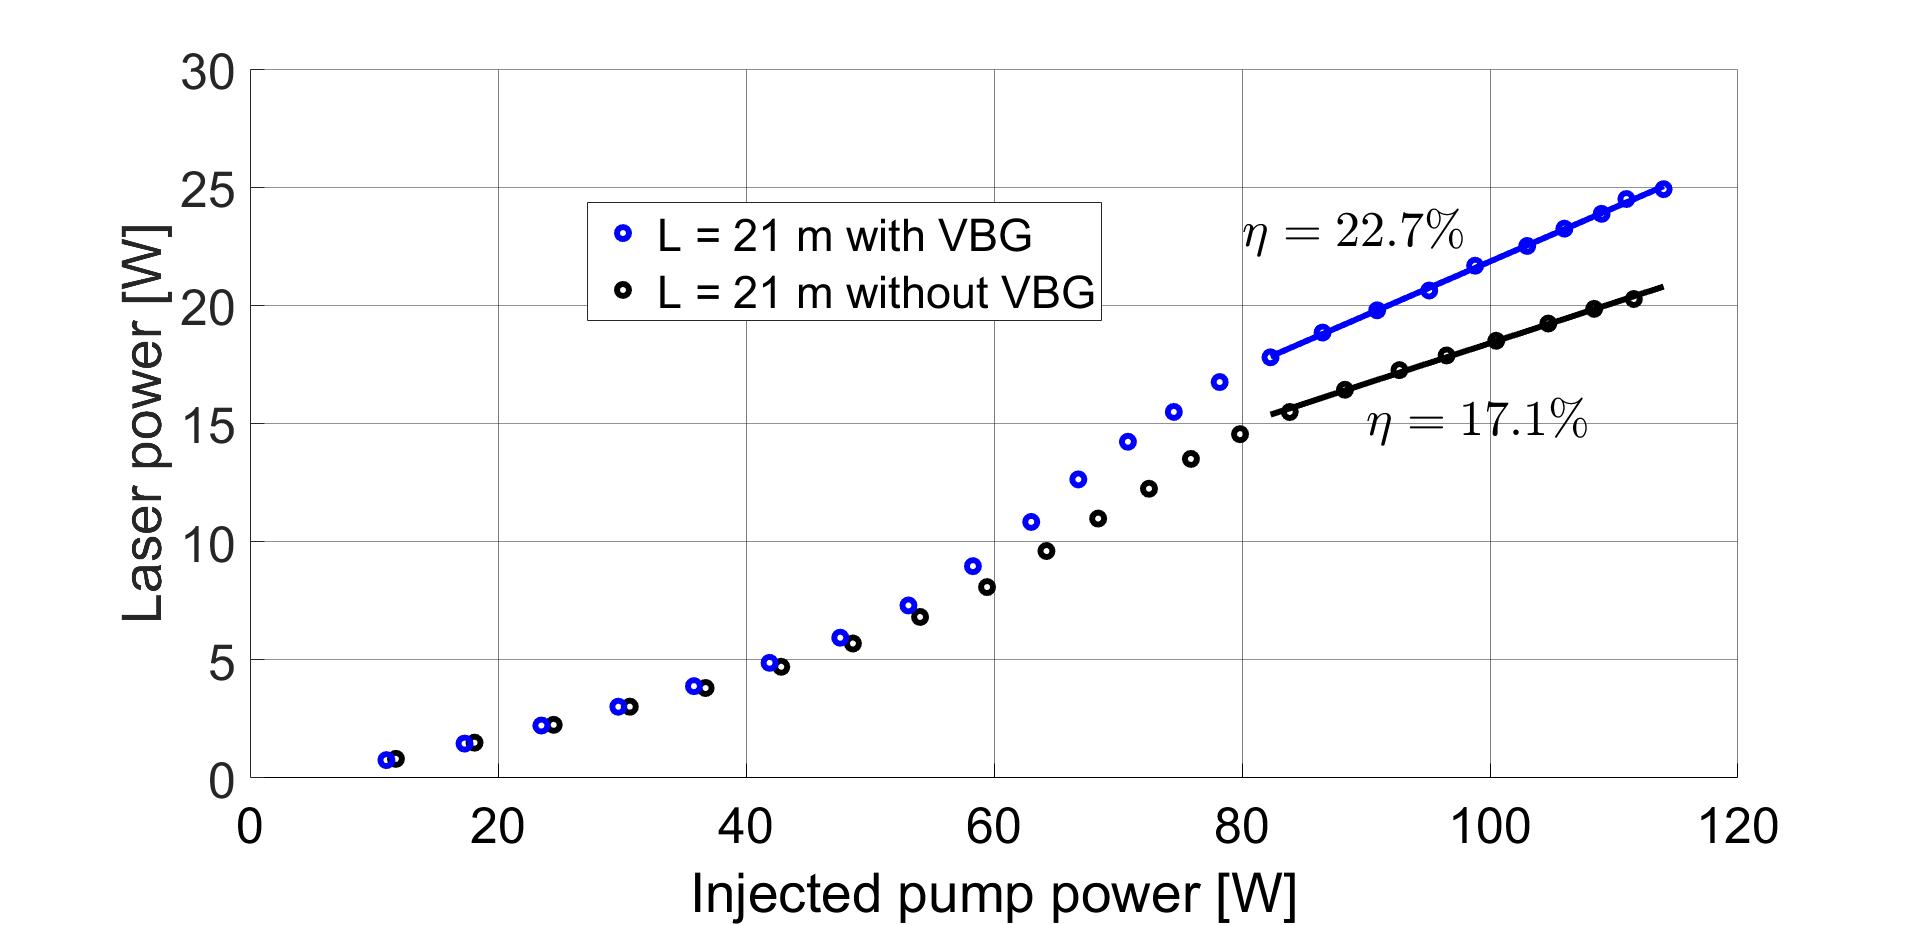 Laser output power of the Er-doped fiber laser as function of the injected pump power with and without the presence of a VBG. The pump reflector increases the slope efficiency from 17.1% to 22.7% at high pump power when the diode wavelength is stabilized at 976 nm.